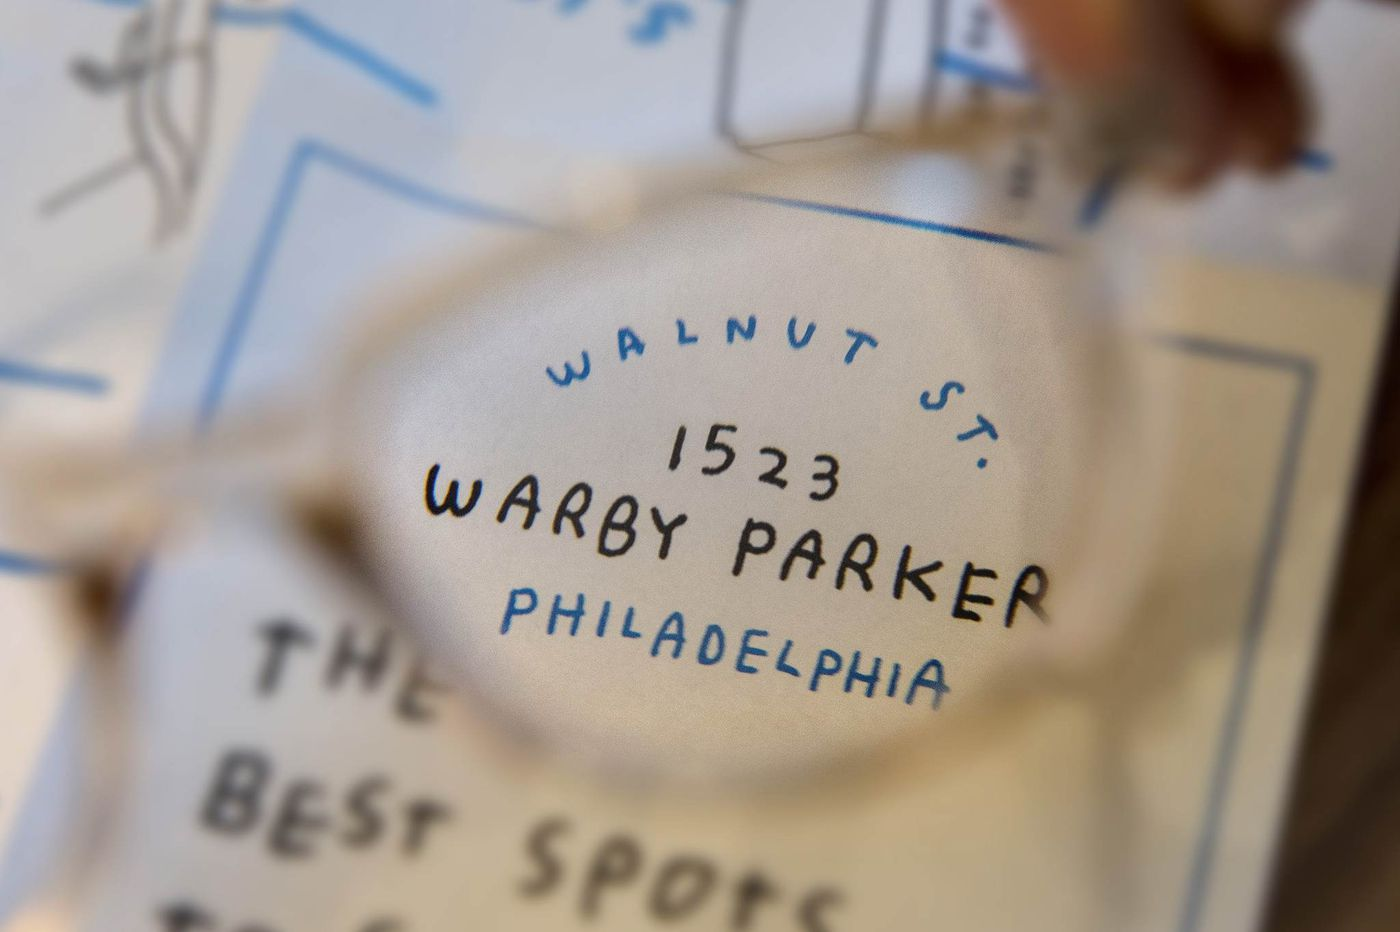 Warby Parker alerts customers to cyber data breach